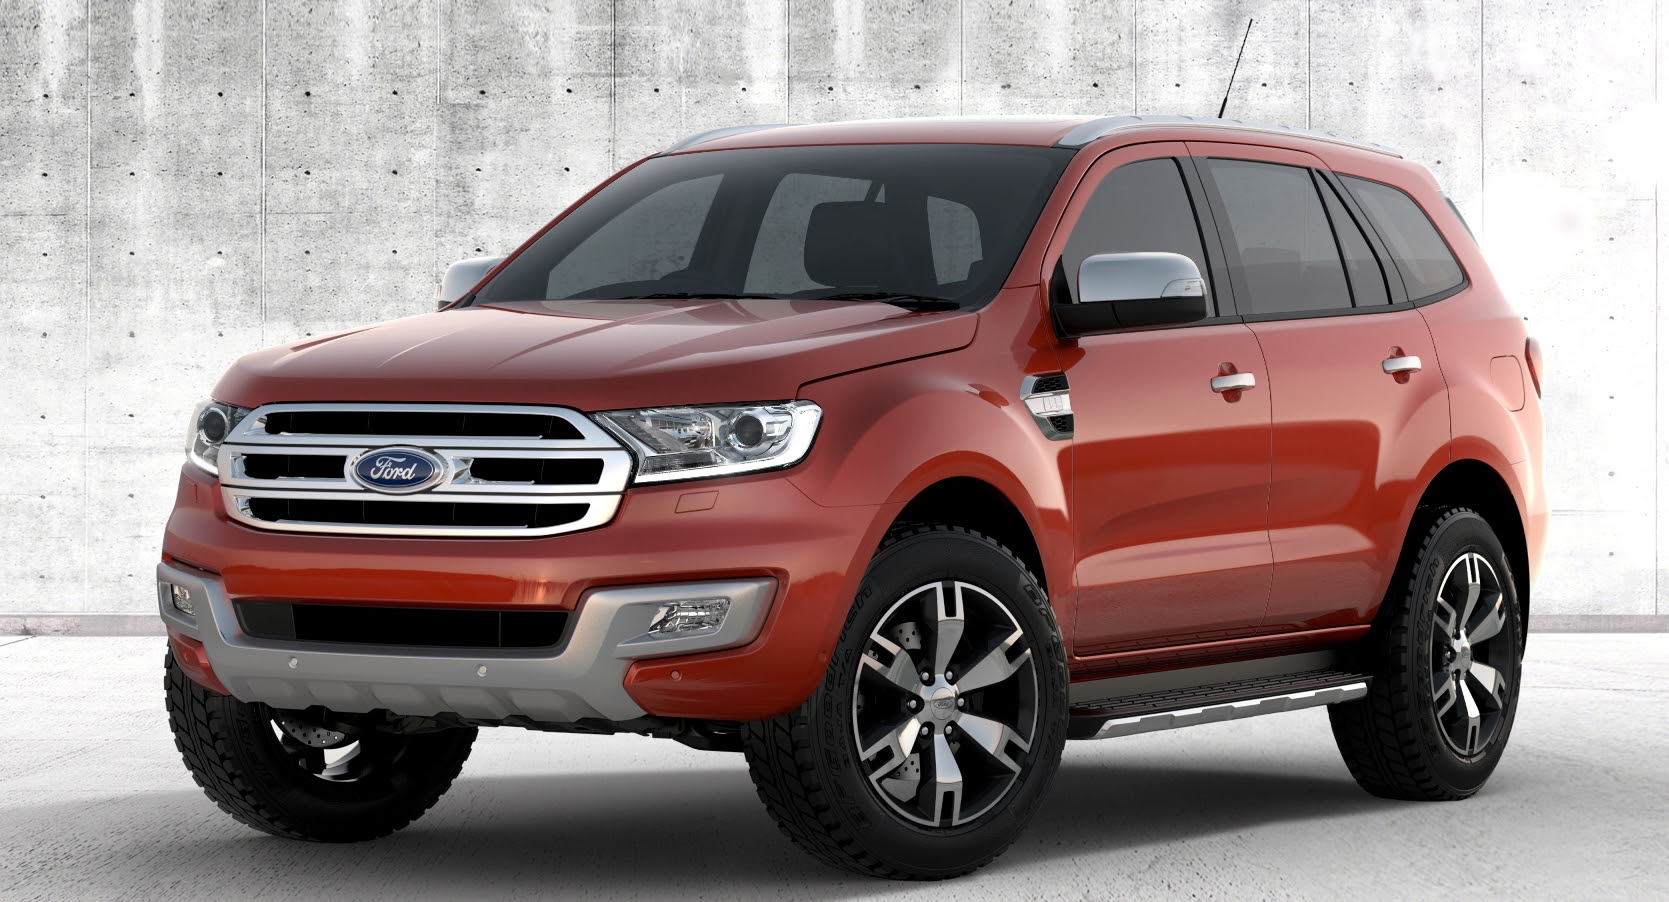 2017 ford ranger for sale philippines new cars review. Black Bedroom Furniture Sets. Home Design Ideas